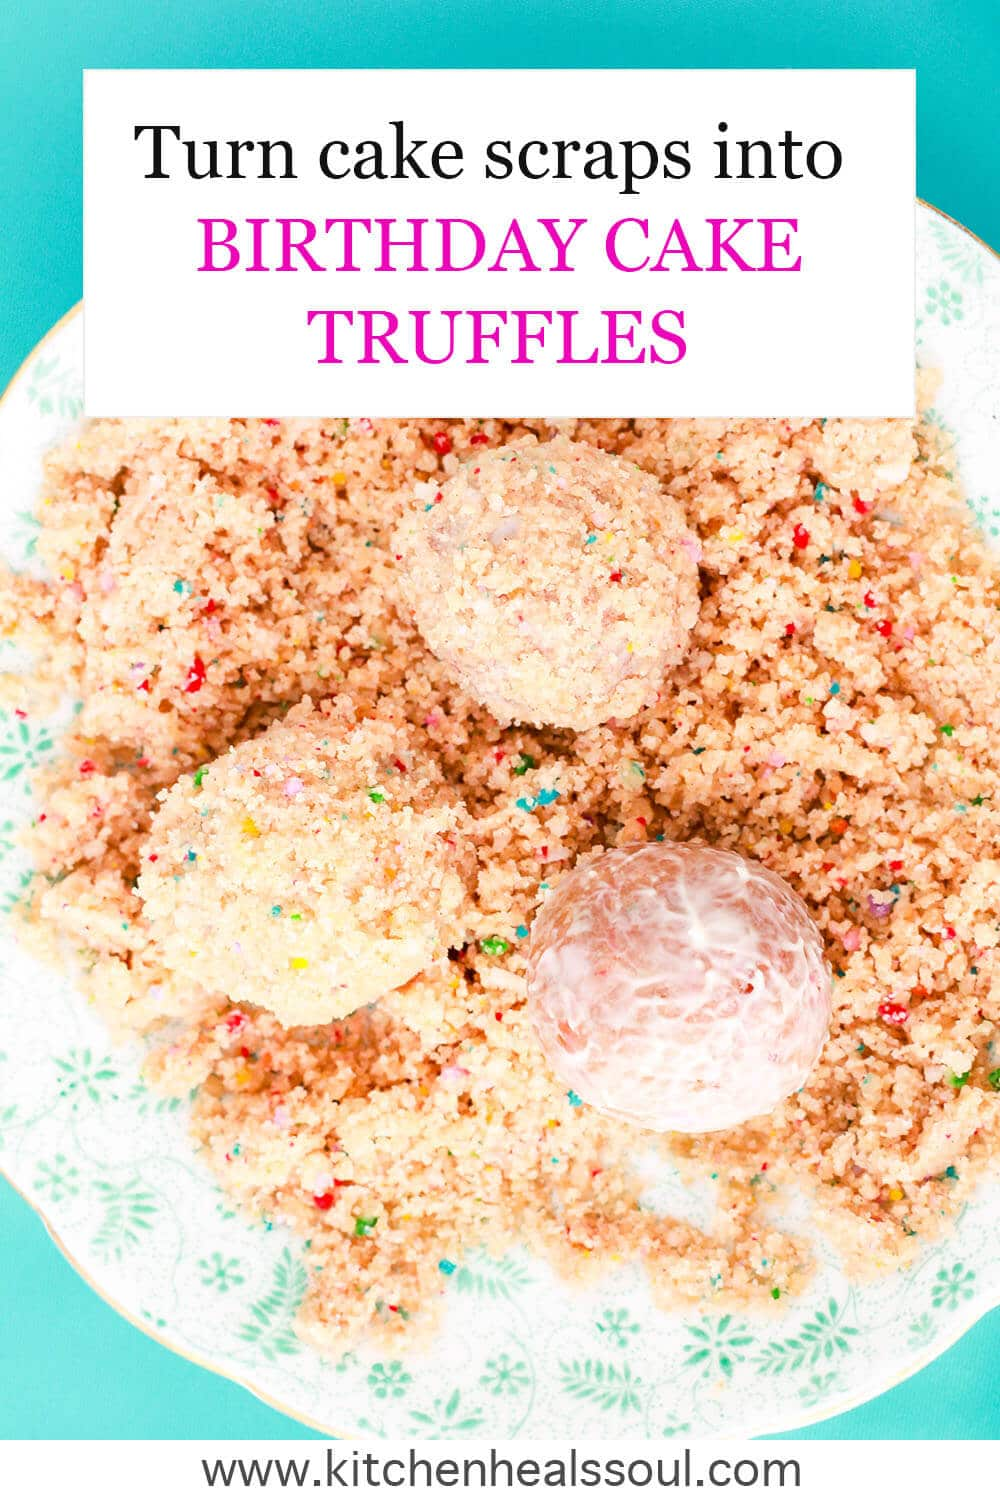 Coating birthday cake truffles in white chocolate and birthday cake crumbs on a floral saucer on a turquoise background